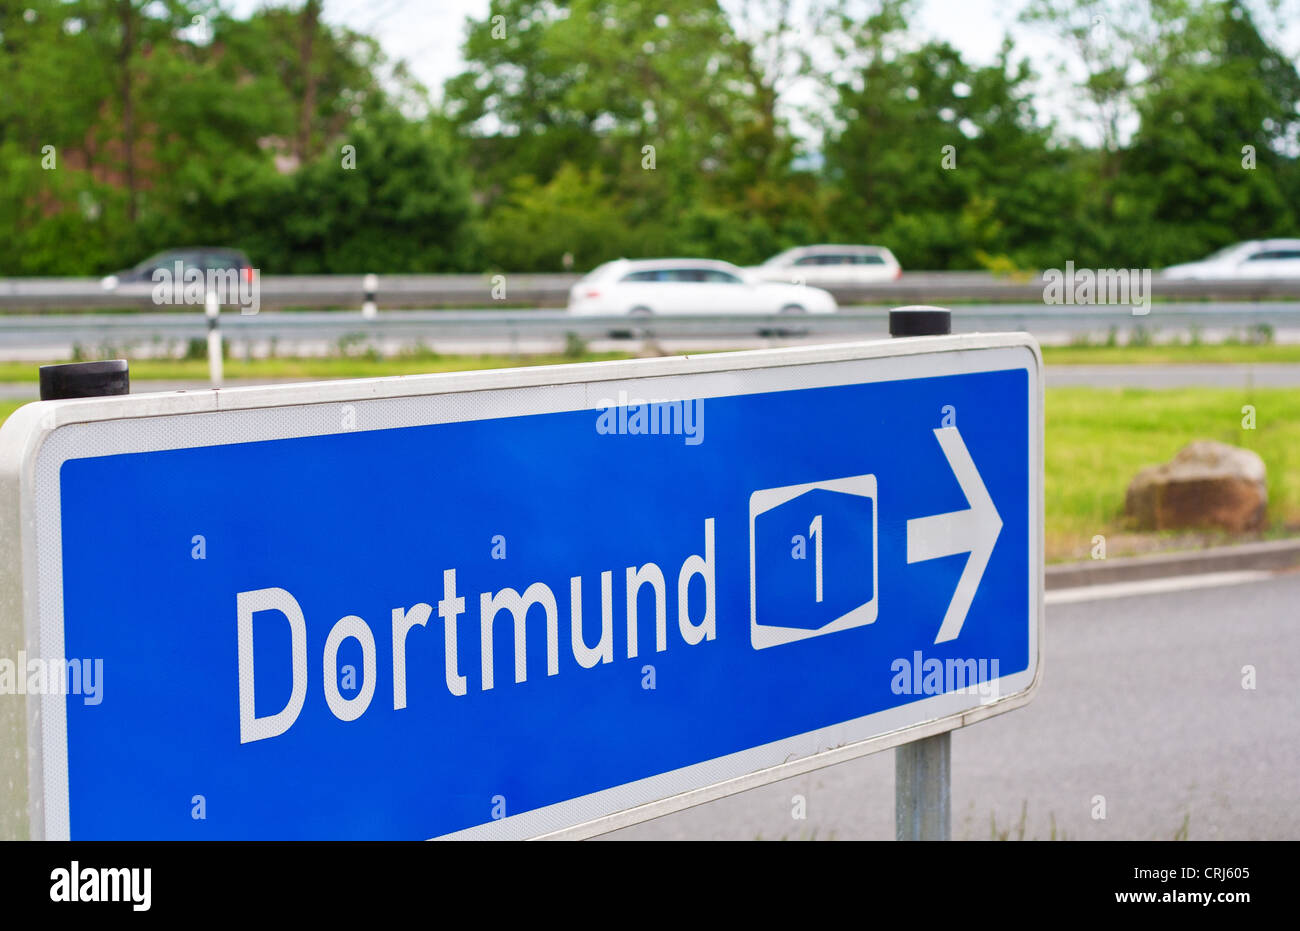 Road sign on german Autobahn shows direction to the city of Dortmund via the Autobahn 1. - Stock Image